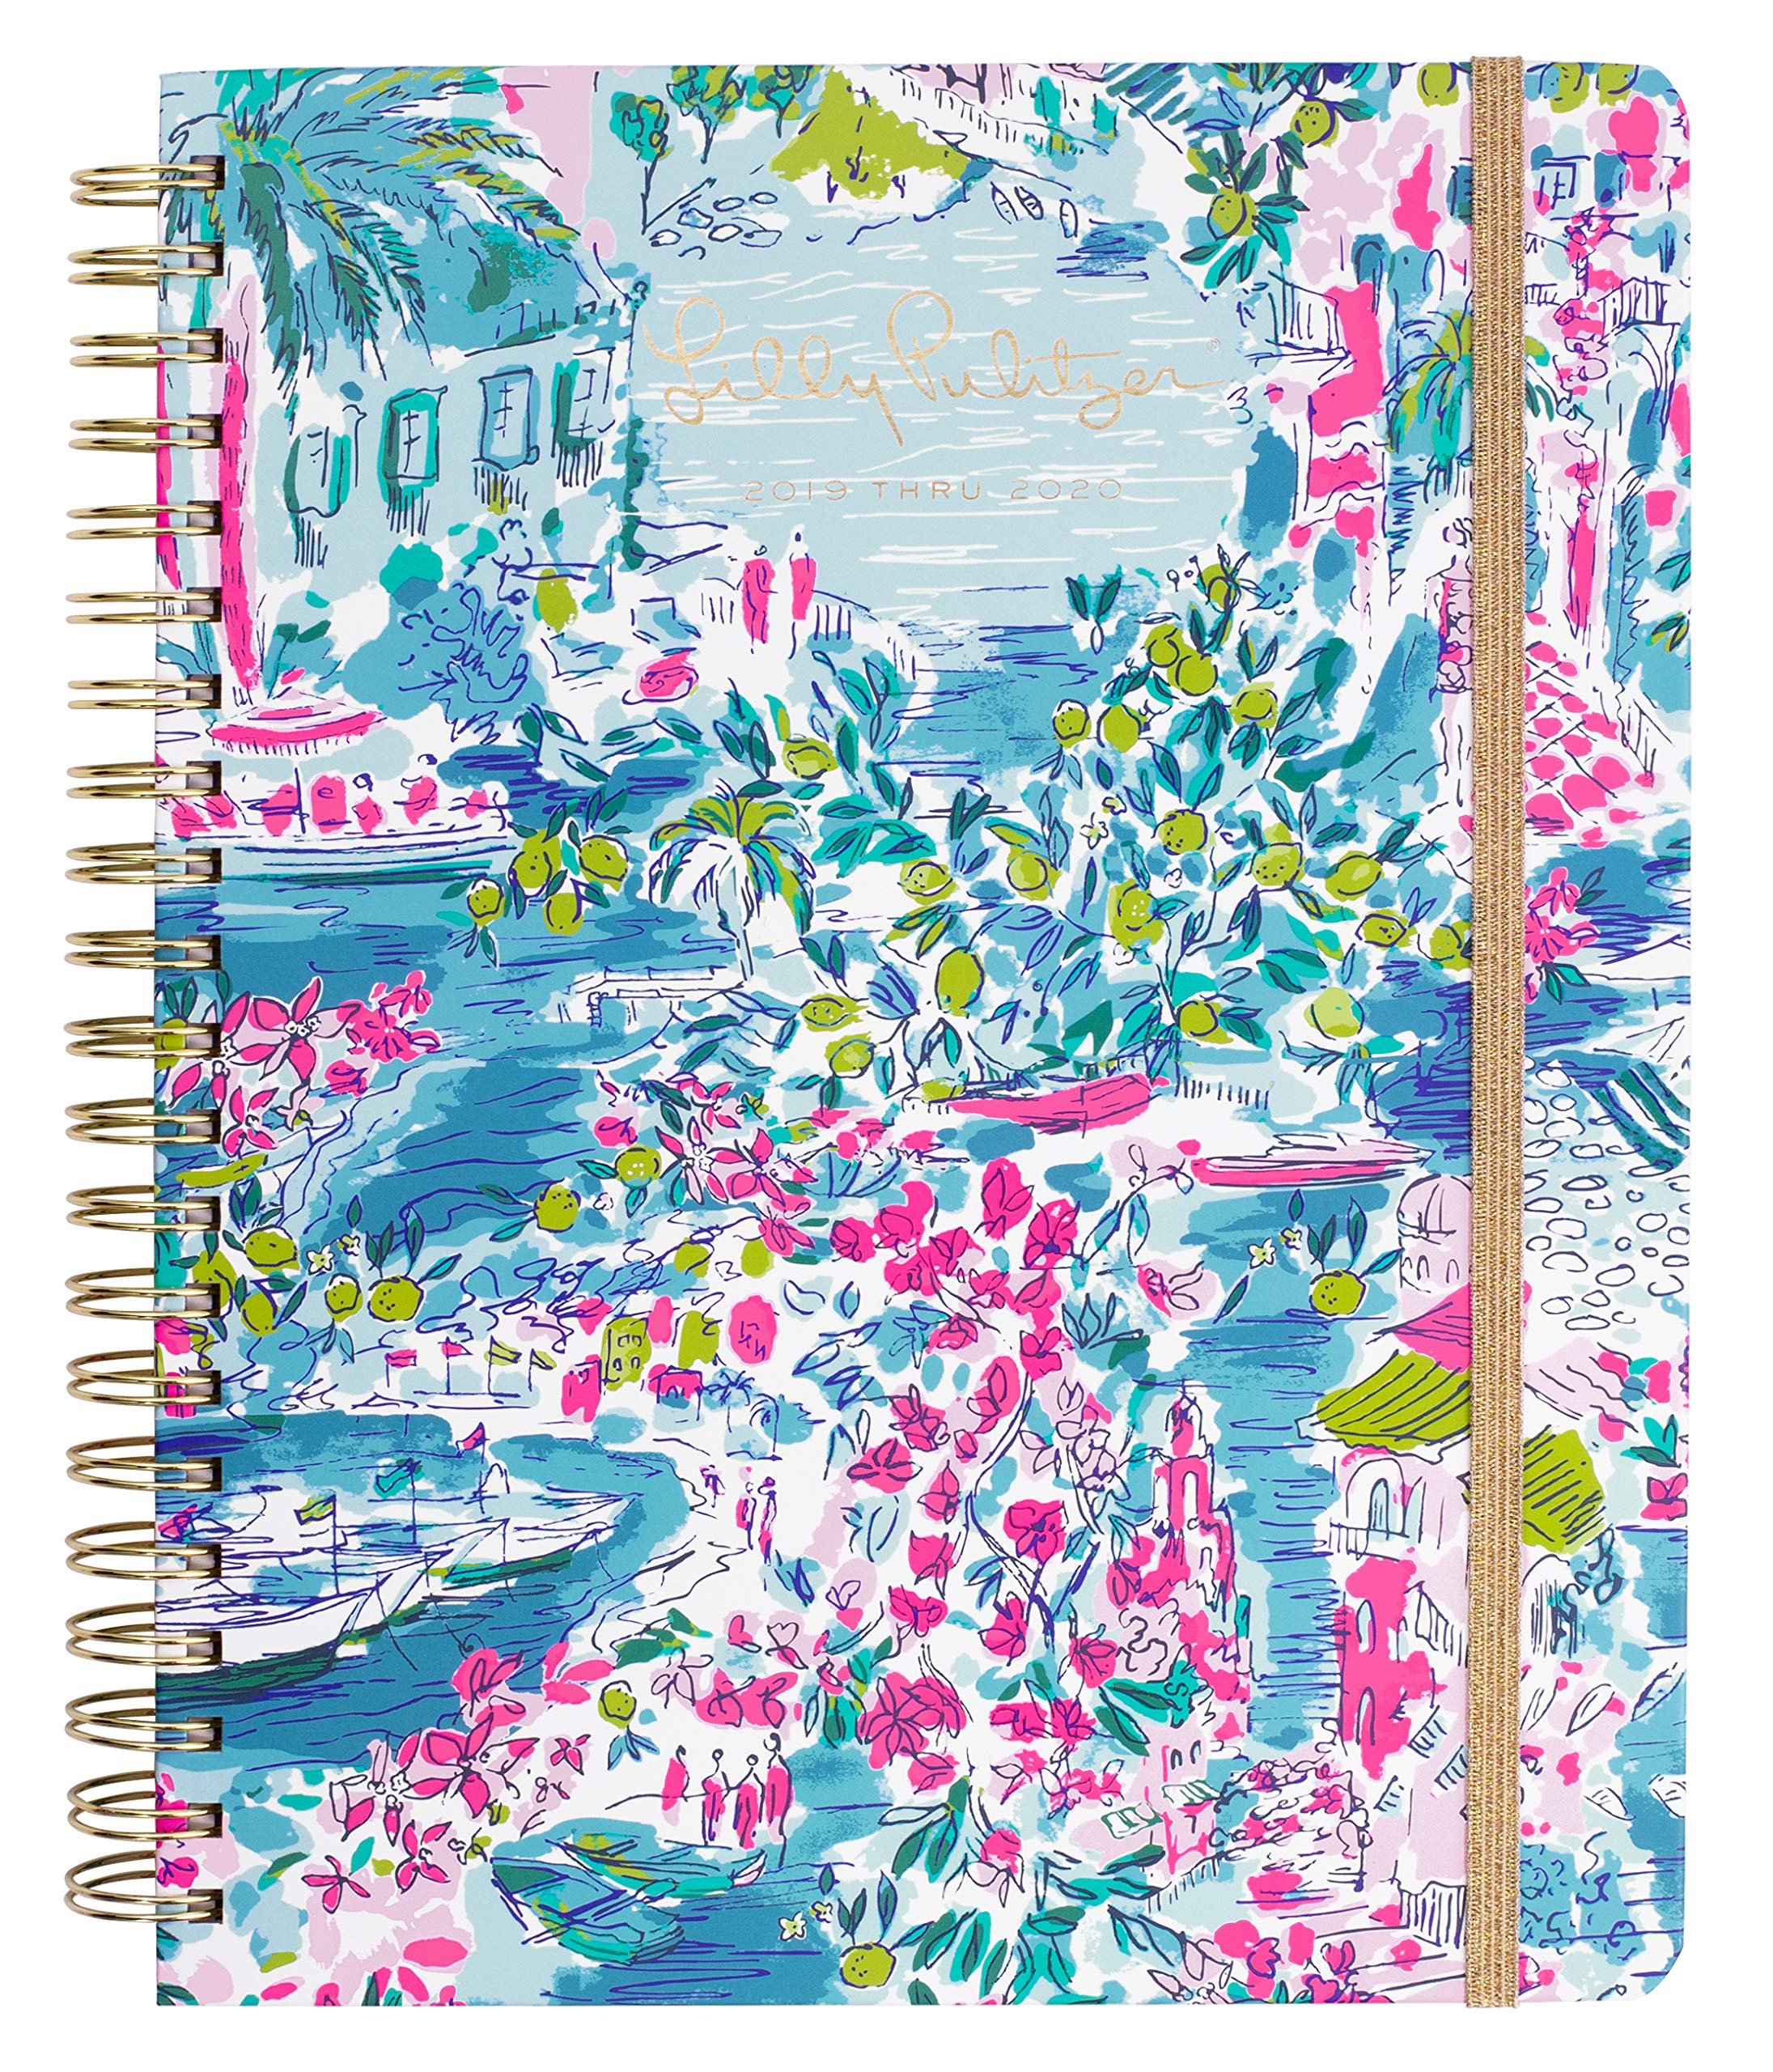 Lilly Pulitzer Jumbo 17 Month Hardcover Agenda, 11.13'' x 8.63'' Personal Planner with Monthly & Weekly Spreads for Aug. 2019 - Dec. 2020, Postcards from Positano